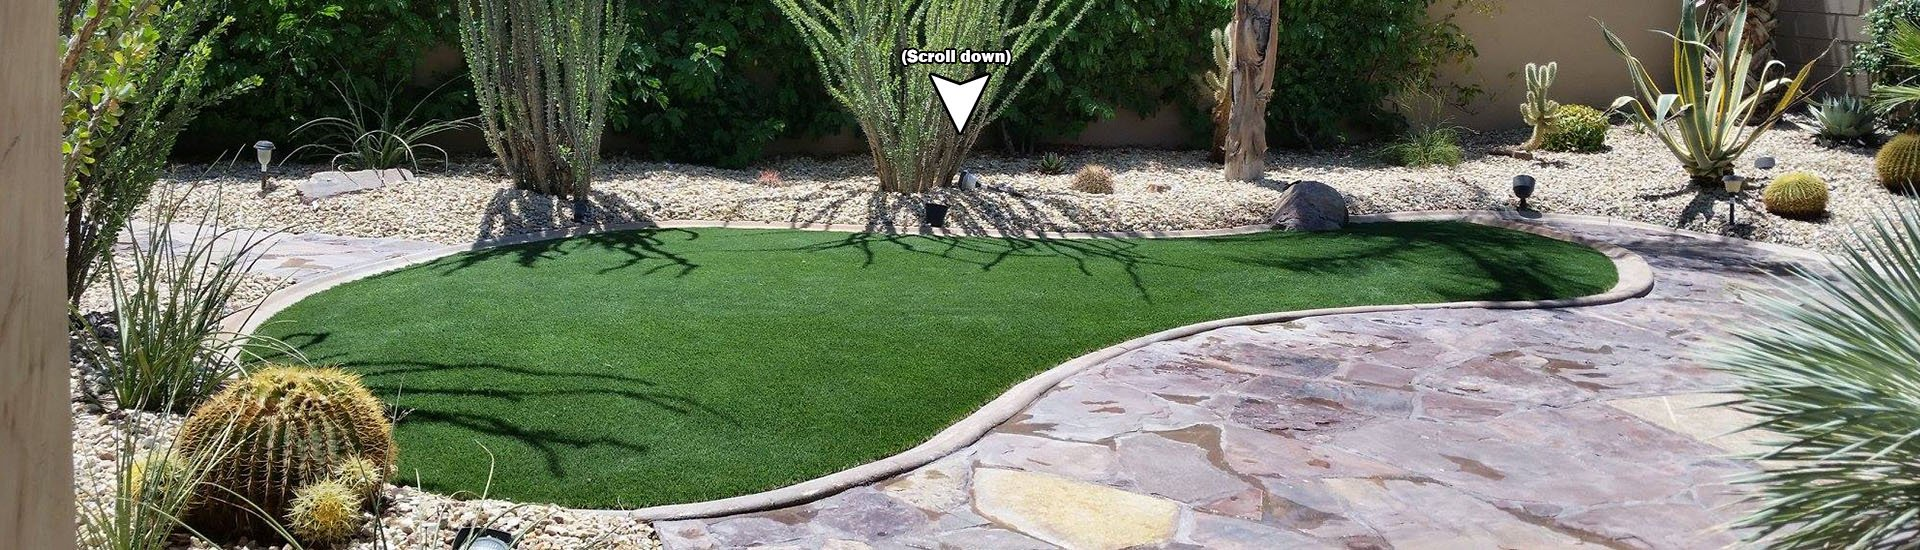 Bowling pin shaped area of artificial grass